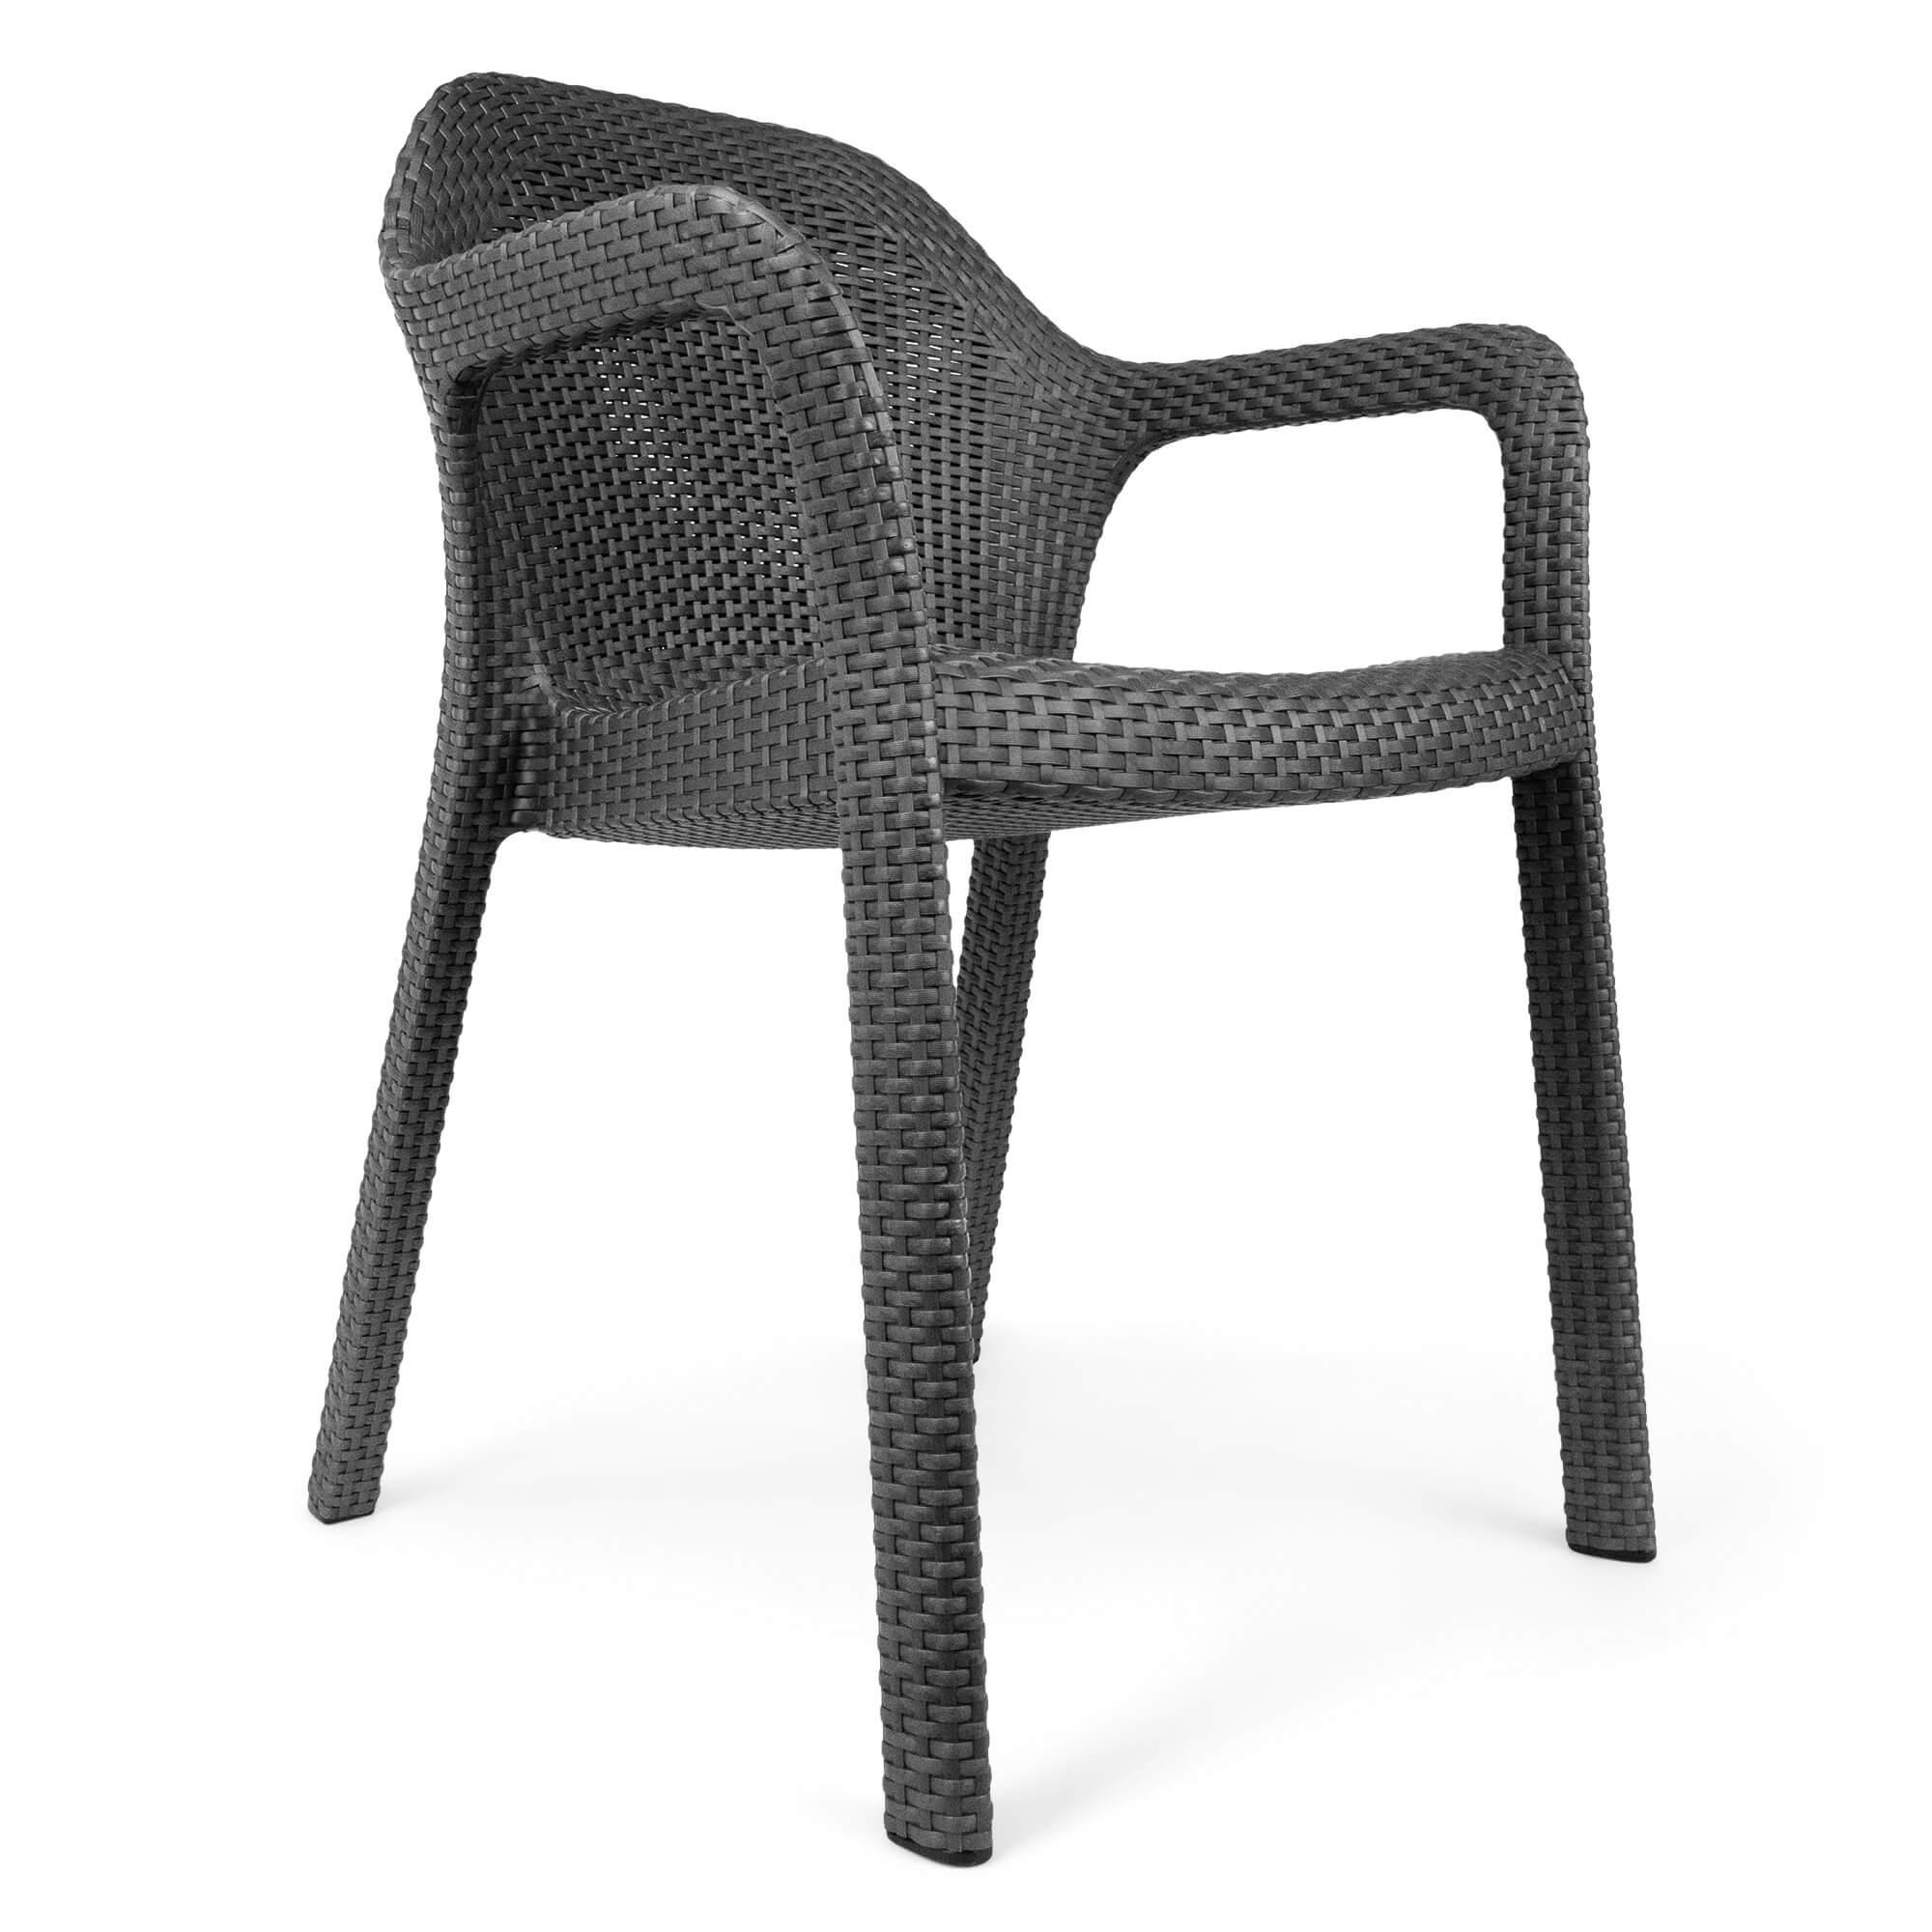 Chair mocha - Image 4